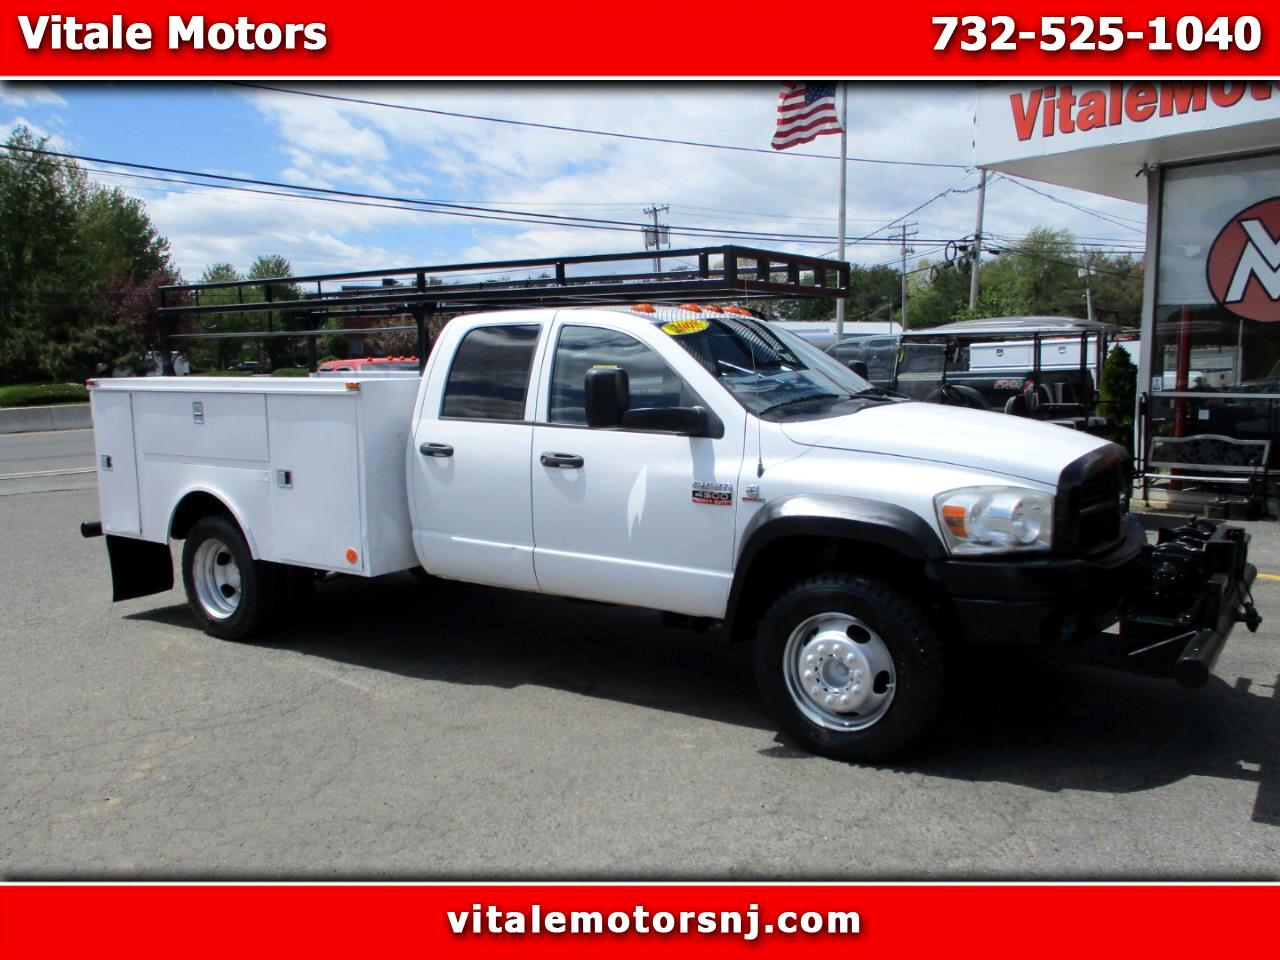 2008 Dodge Ram 4500 QUAD CAB 4X4 DRW UTILITY BODY MANUAL TRANS, DIESEL